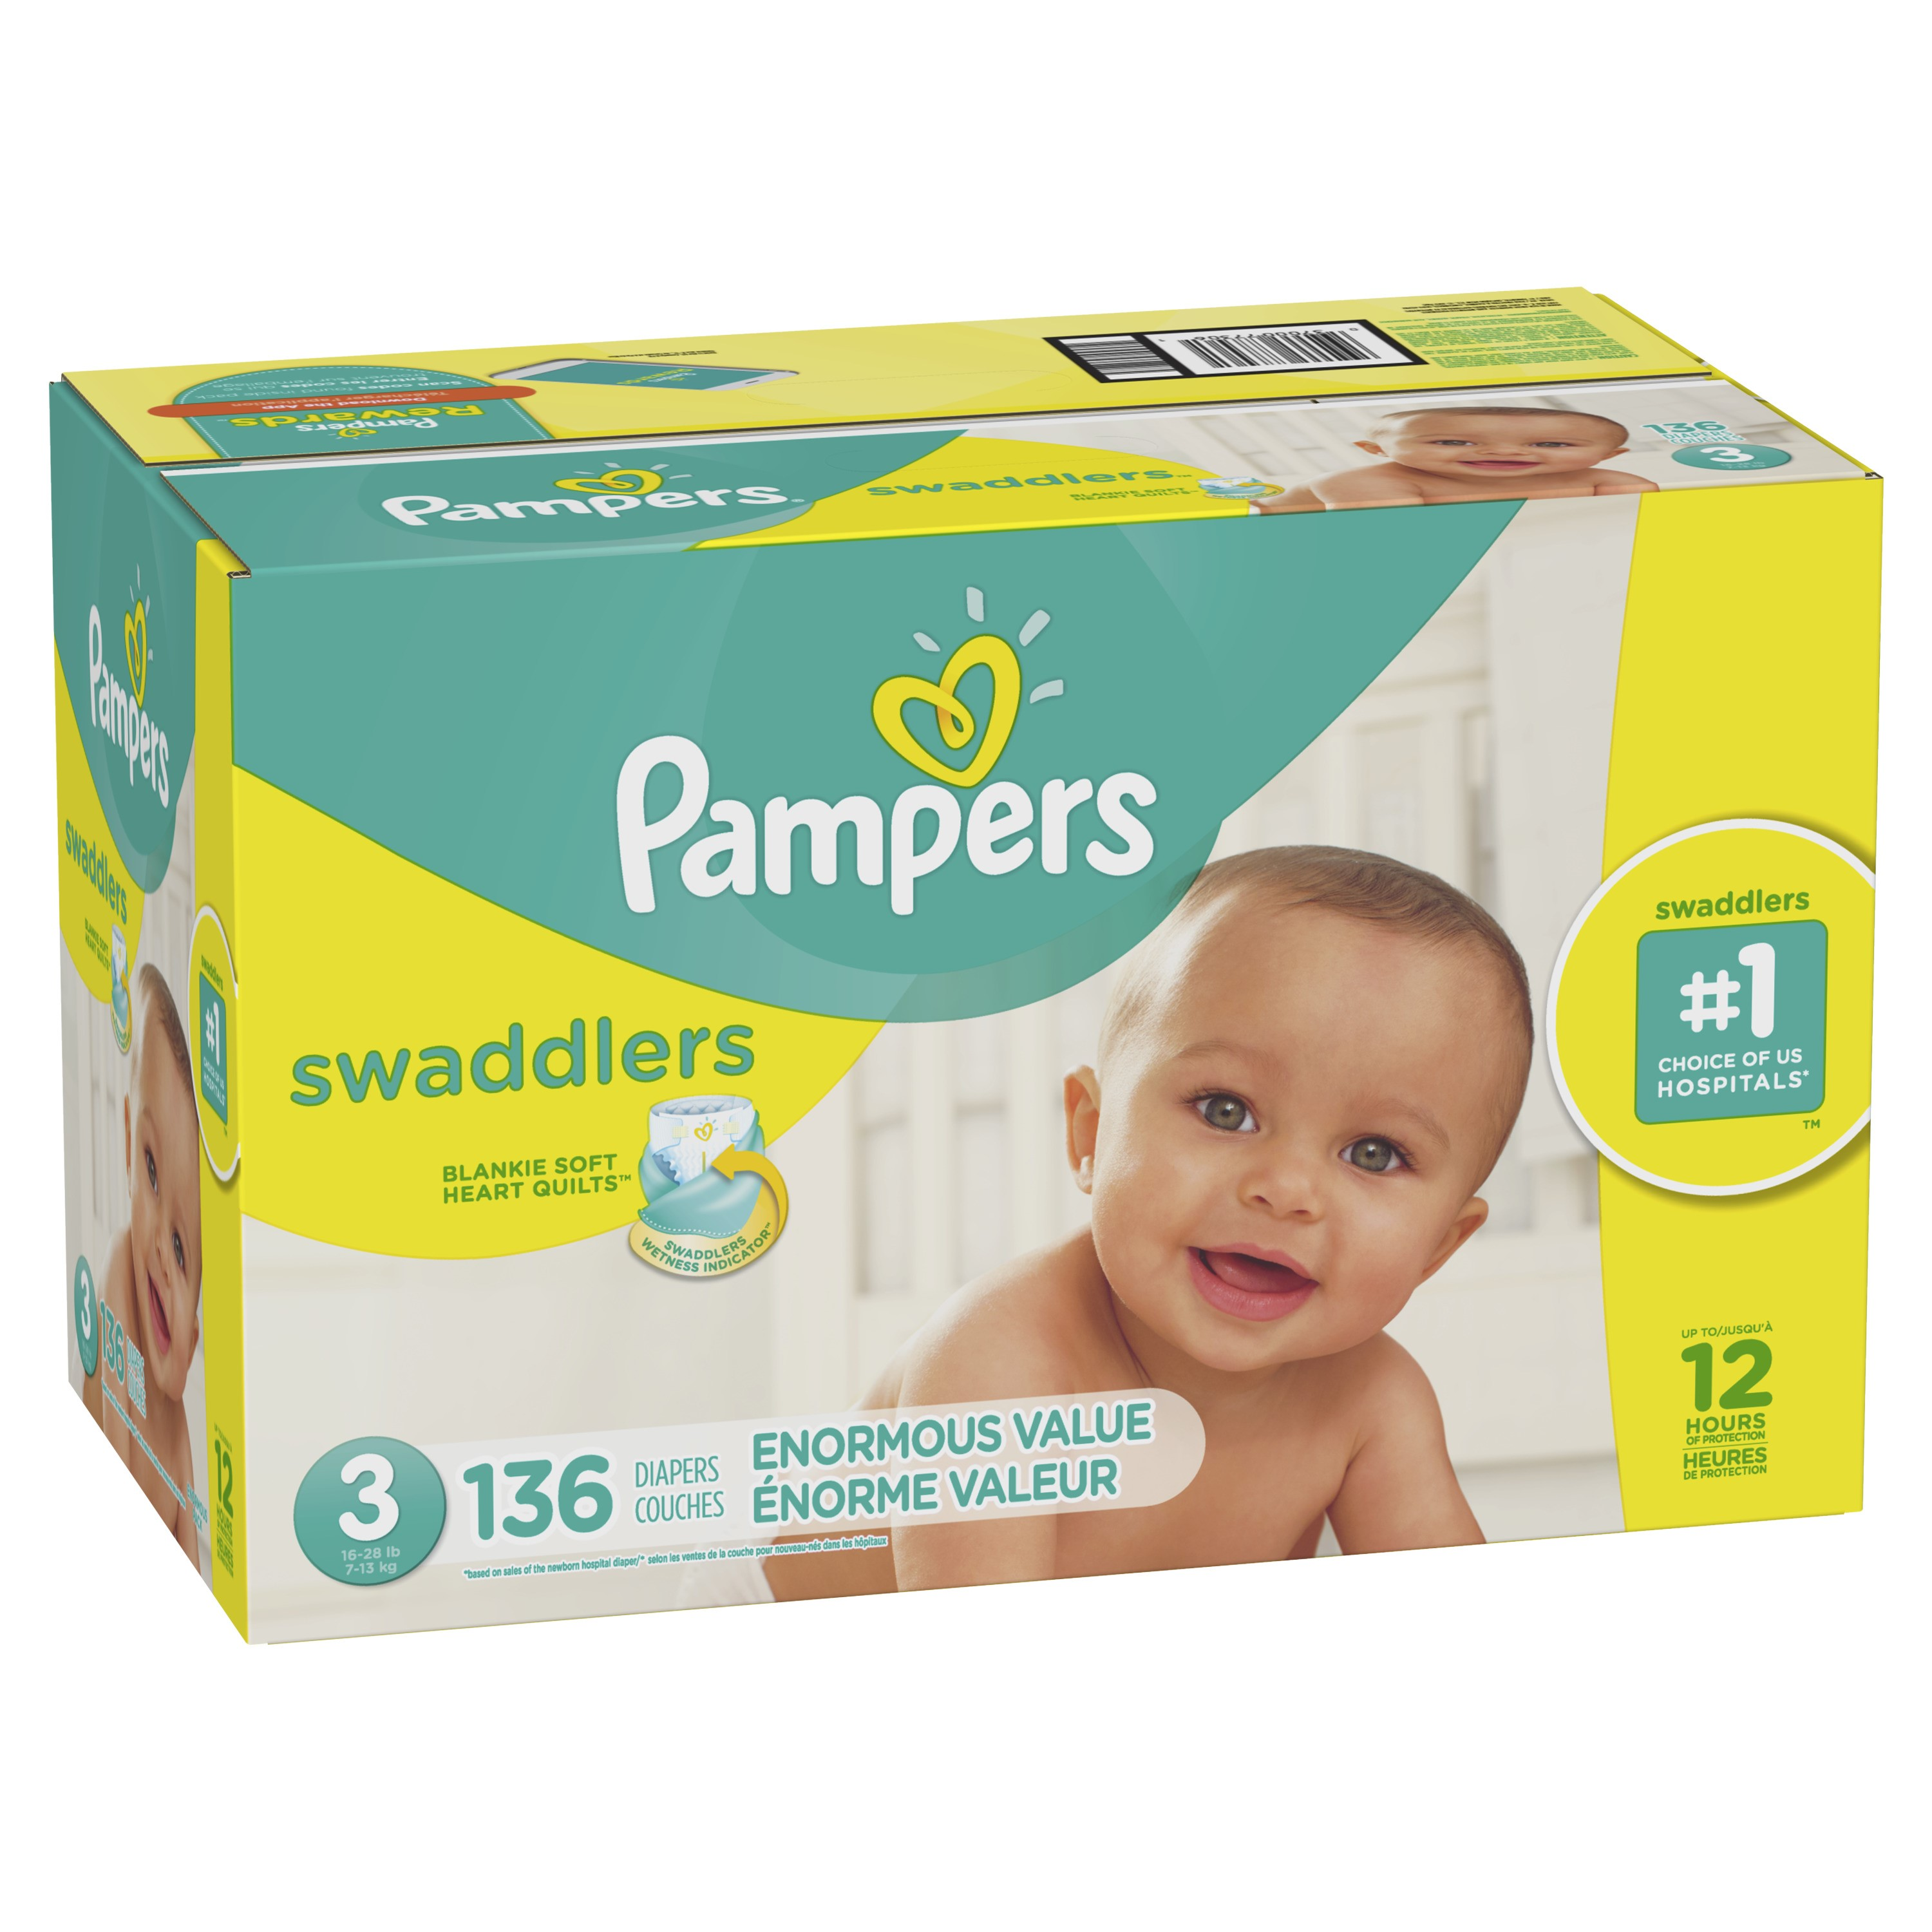 Pampers Swaddlers Diapers (Choose Size and Count) Size 3, 136 Count